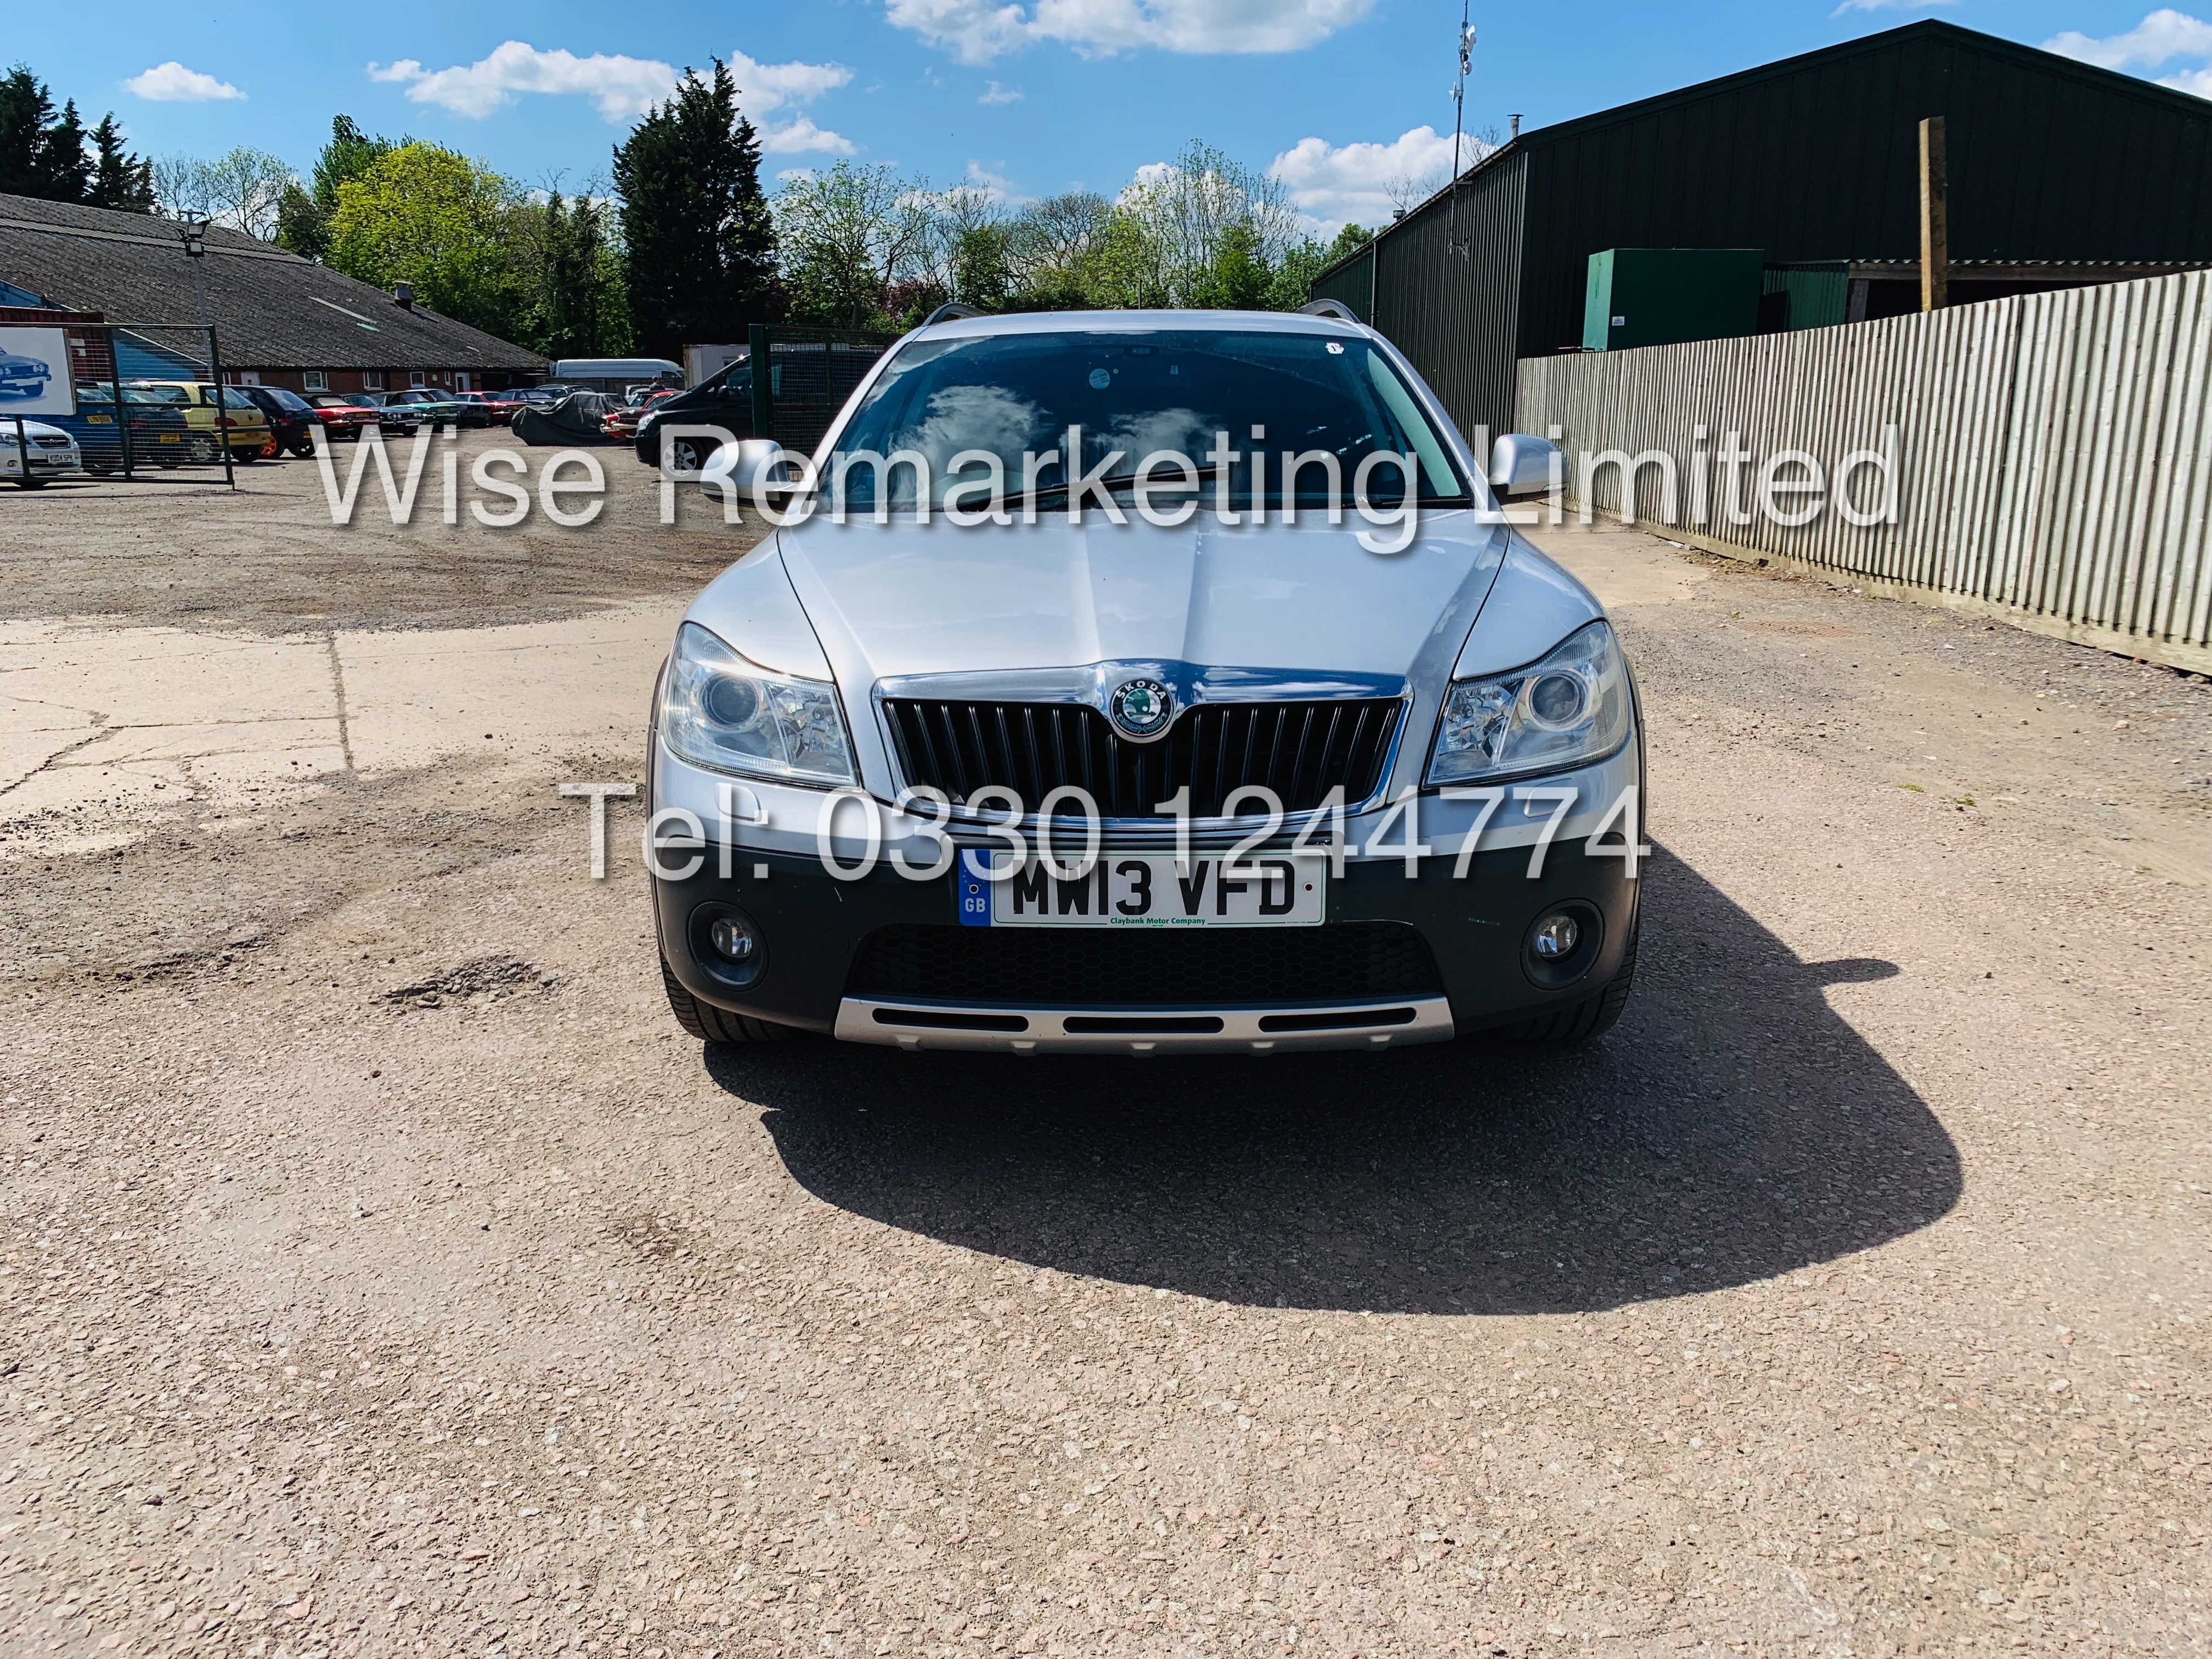 SKODA OCTAVIA (SCOUT) 2.0tdi DSG AUTOMATIC ESTATE / 2013 / 1 OWNER WITH FULL HISTORY / 140BHP / 4x4 - Image 5 of 14